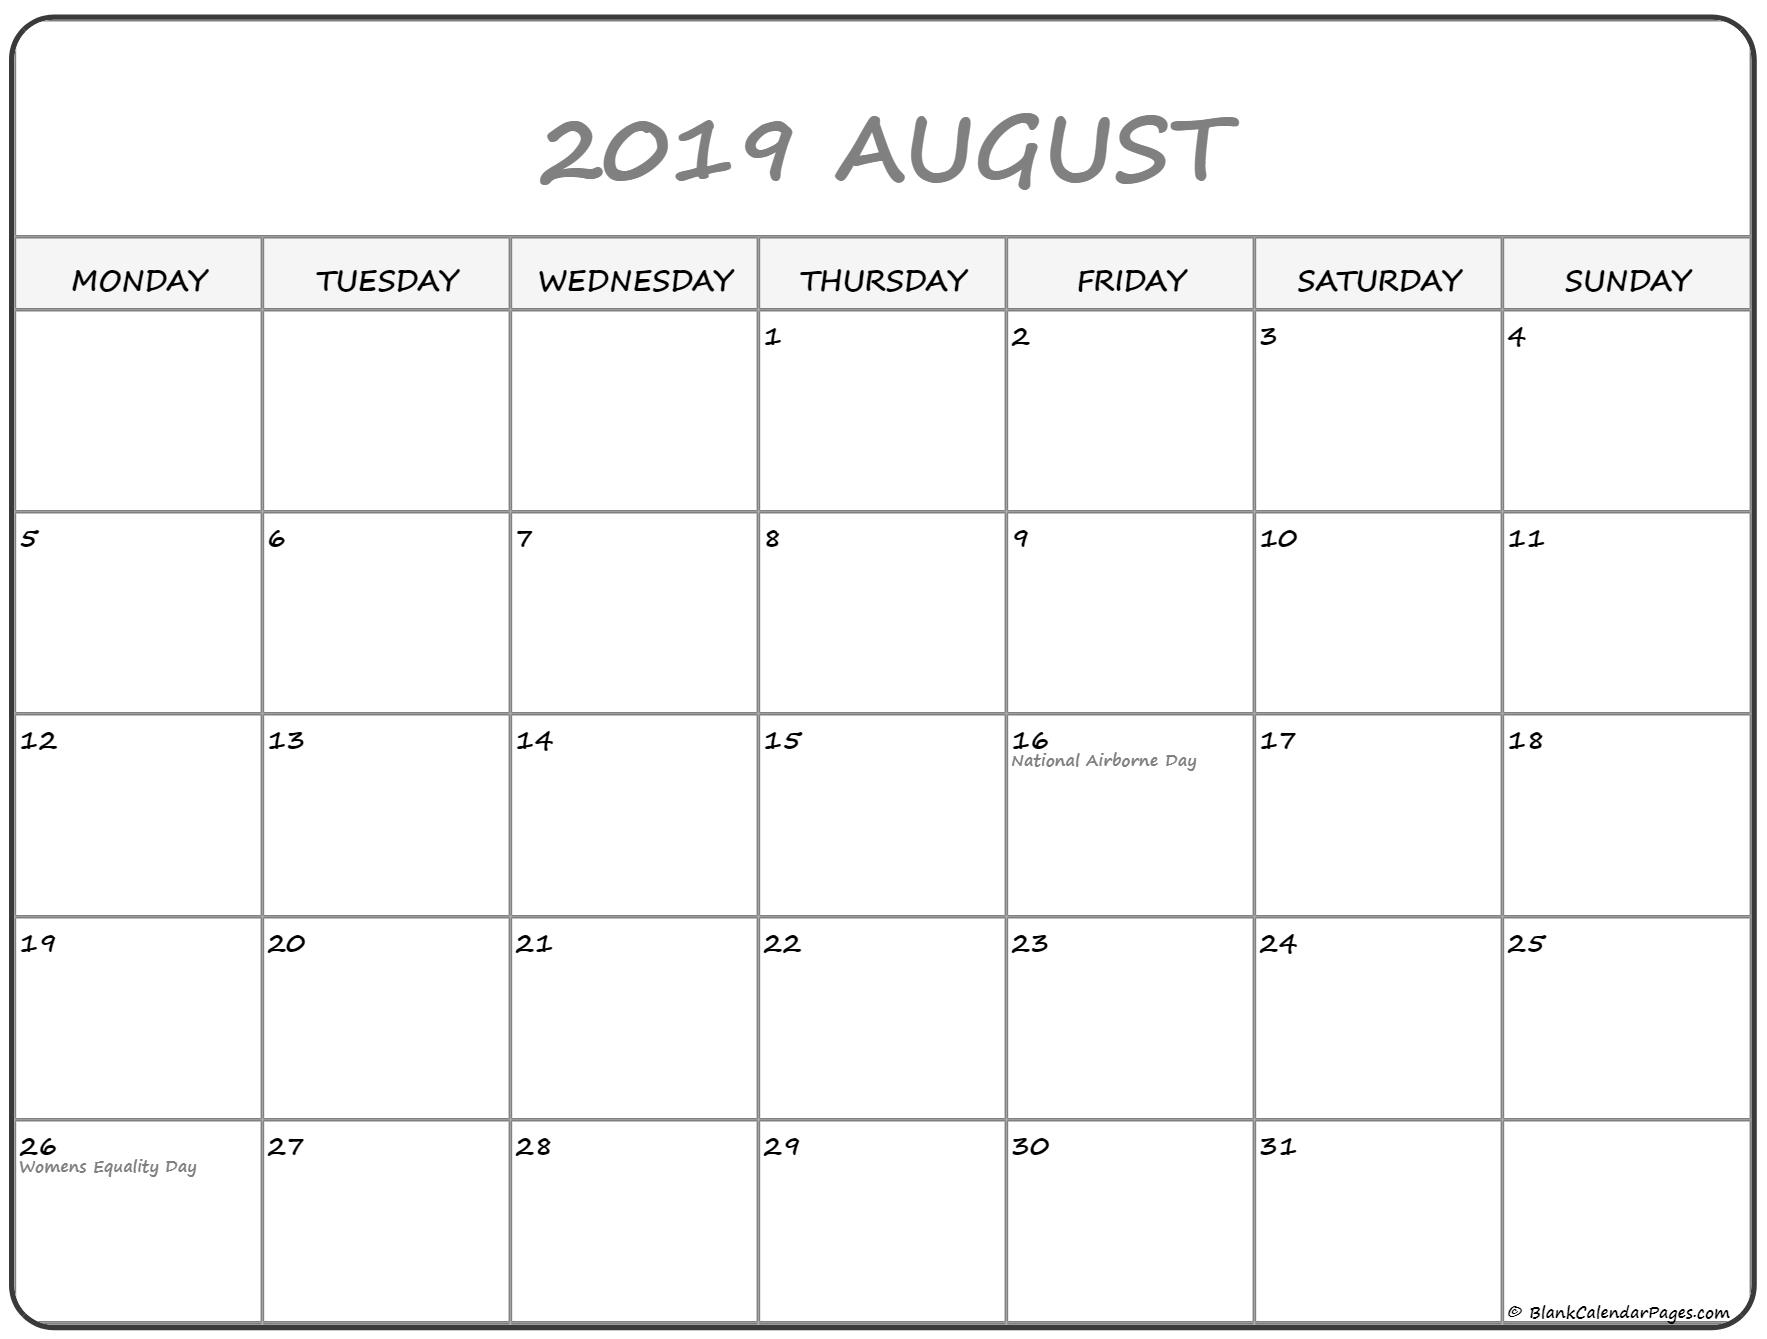 August 2019 Monday Calendar | Monday To Sunday